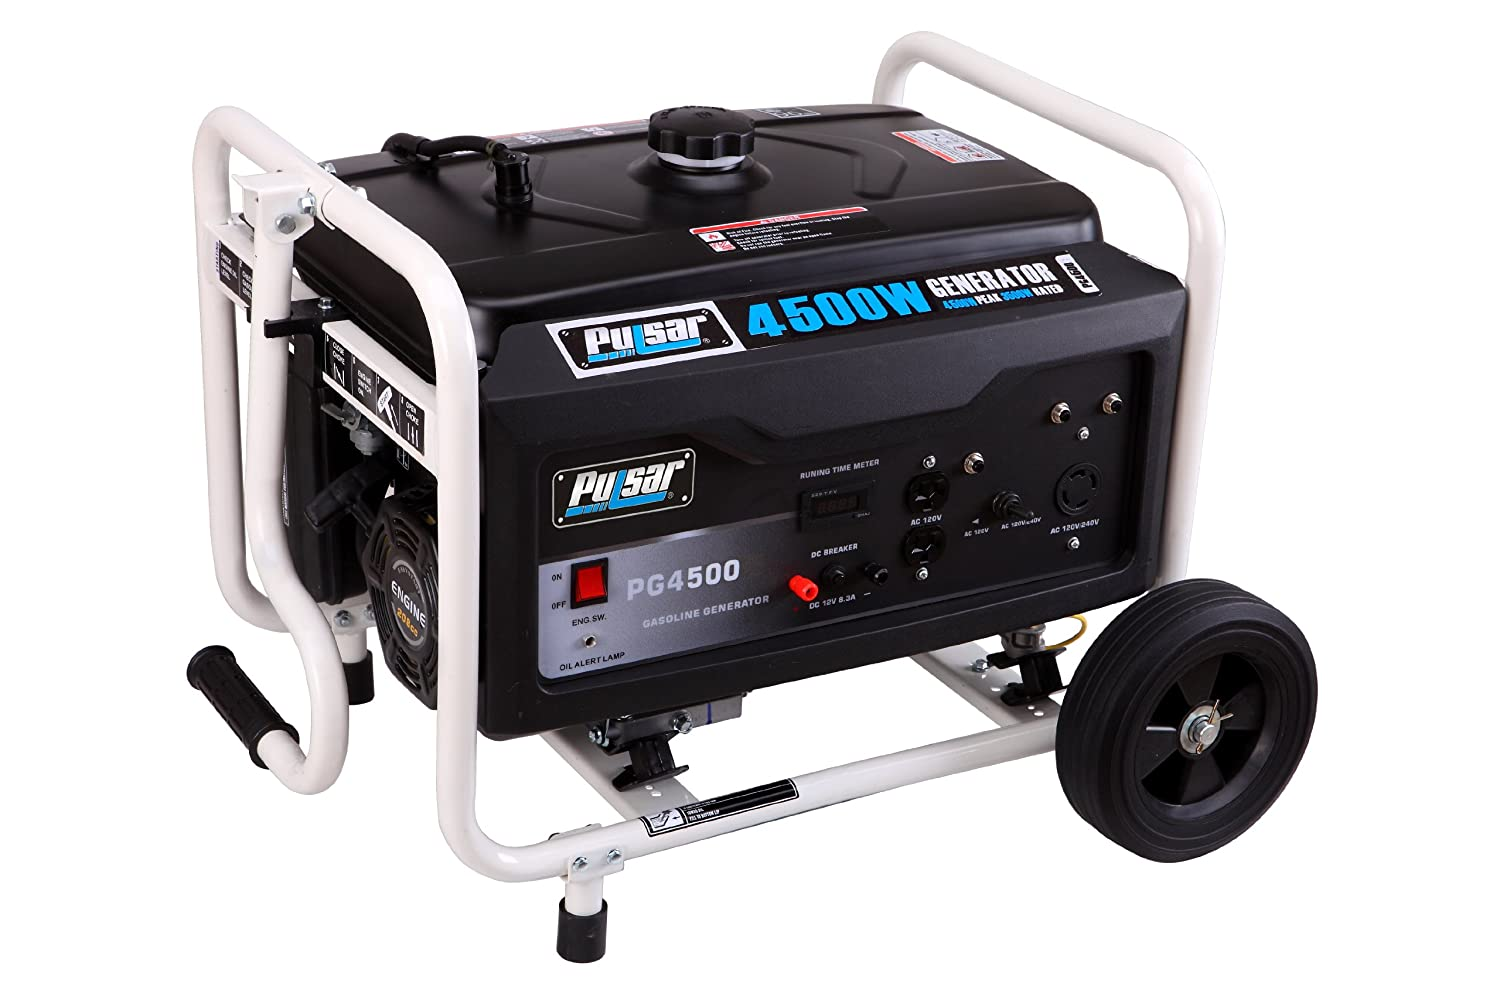 Pulsar Pg4500 4500w Peak 3500w Rated Portable Gas 50 Amp Rv Outlet Powered Generator Power Generators Garden Outdoor